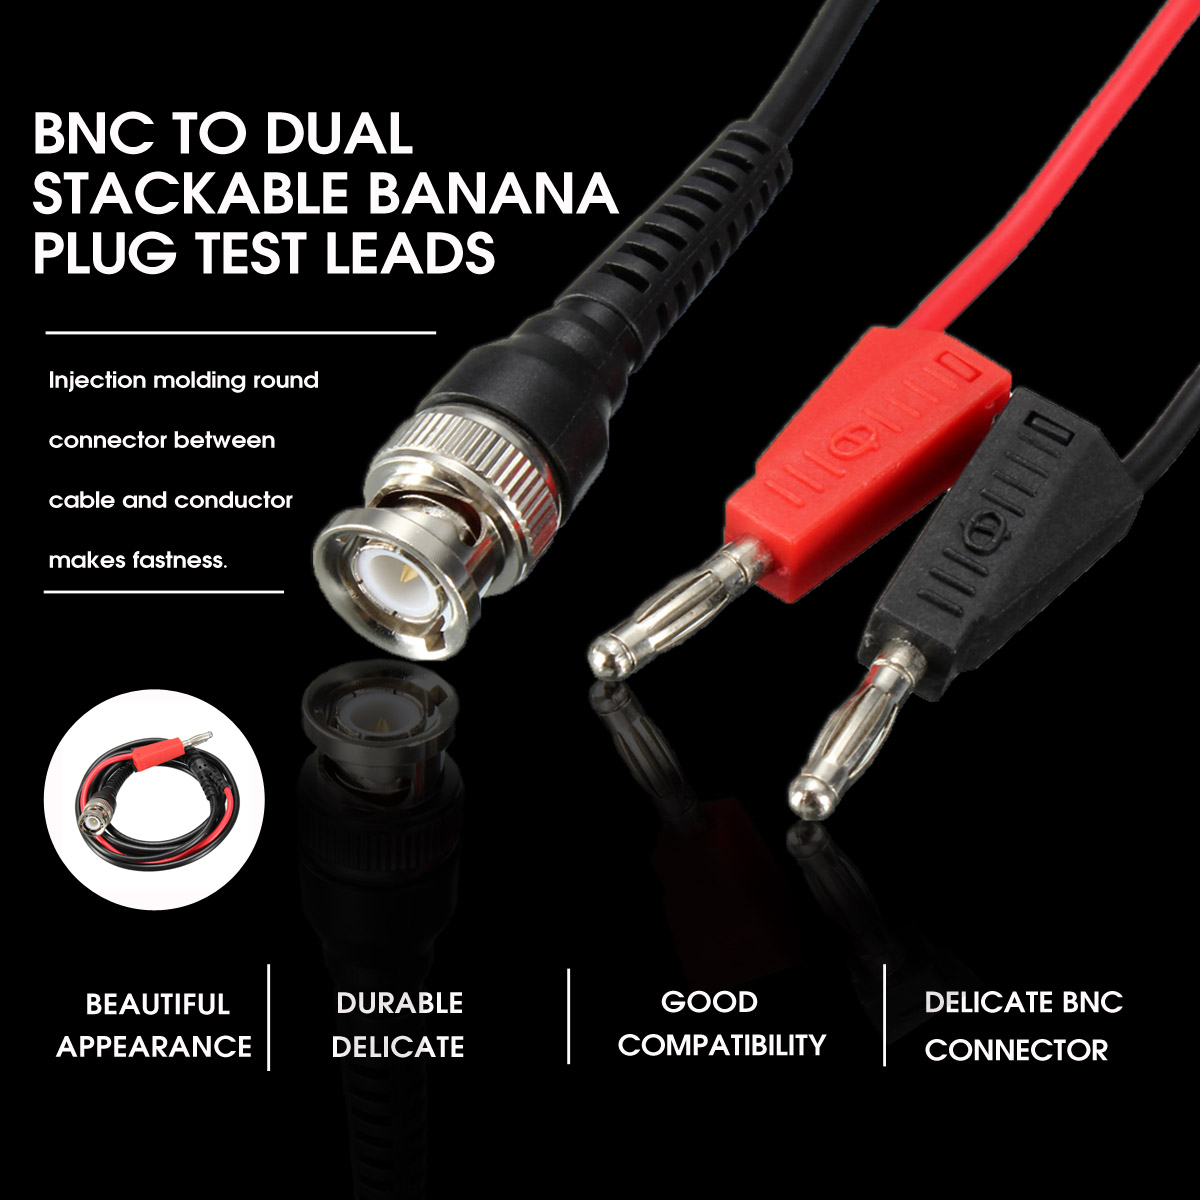 New Arrival Black + Red BNC Q9 to Dual 4mm Stackable Banana Plug with Socket Test Leads Probe Cable 120CM